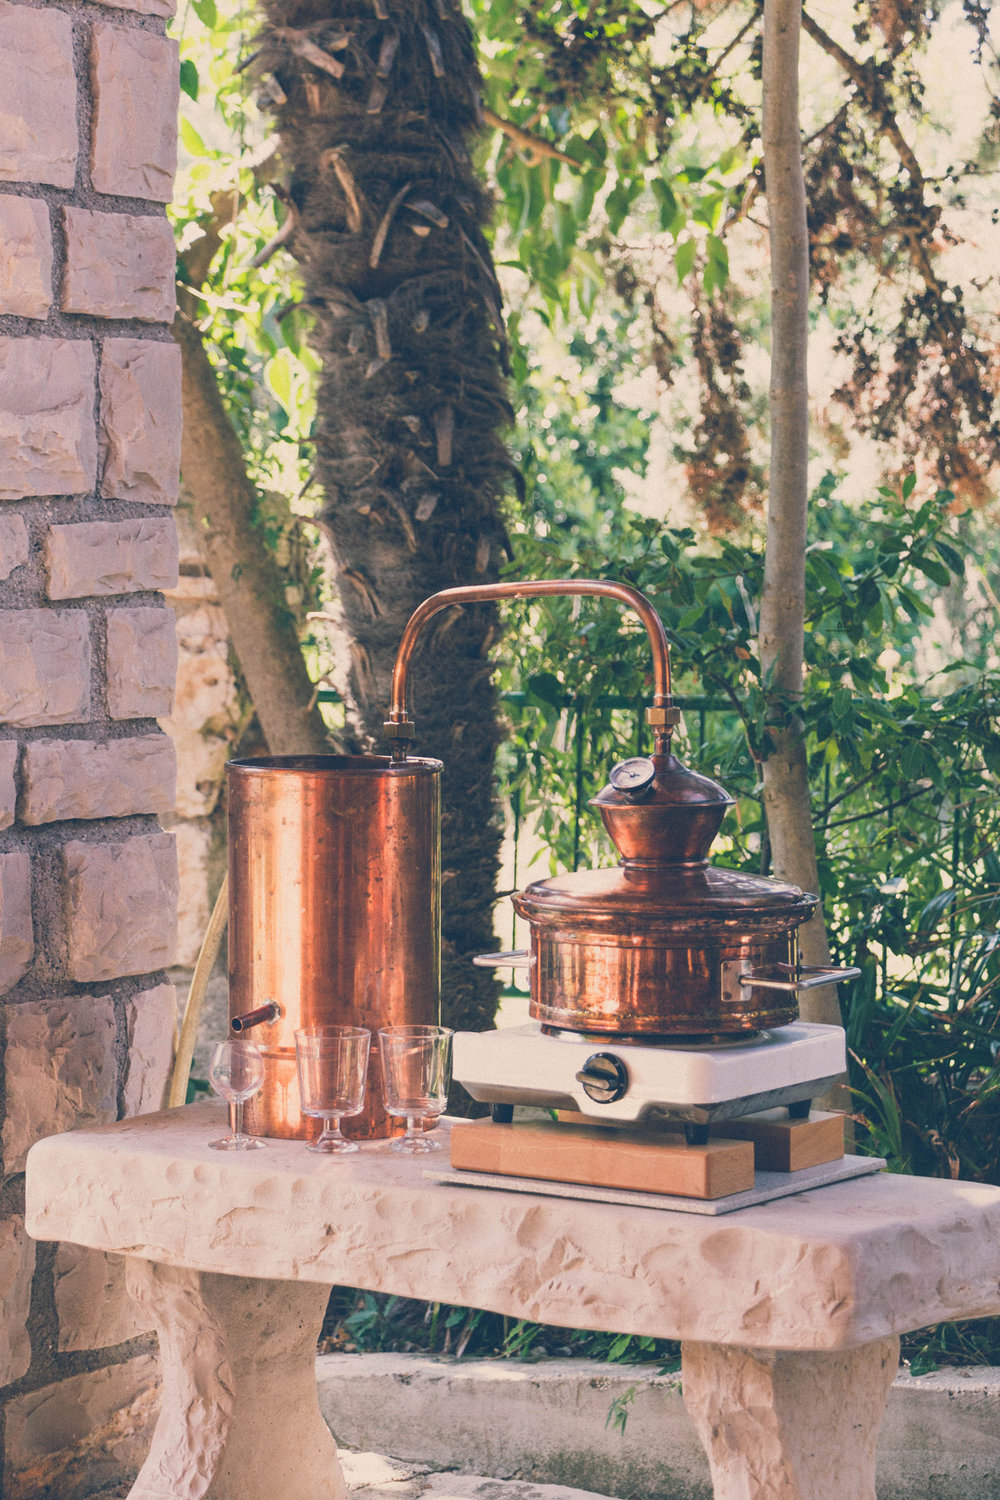 Our small pot still